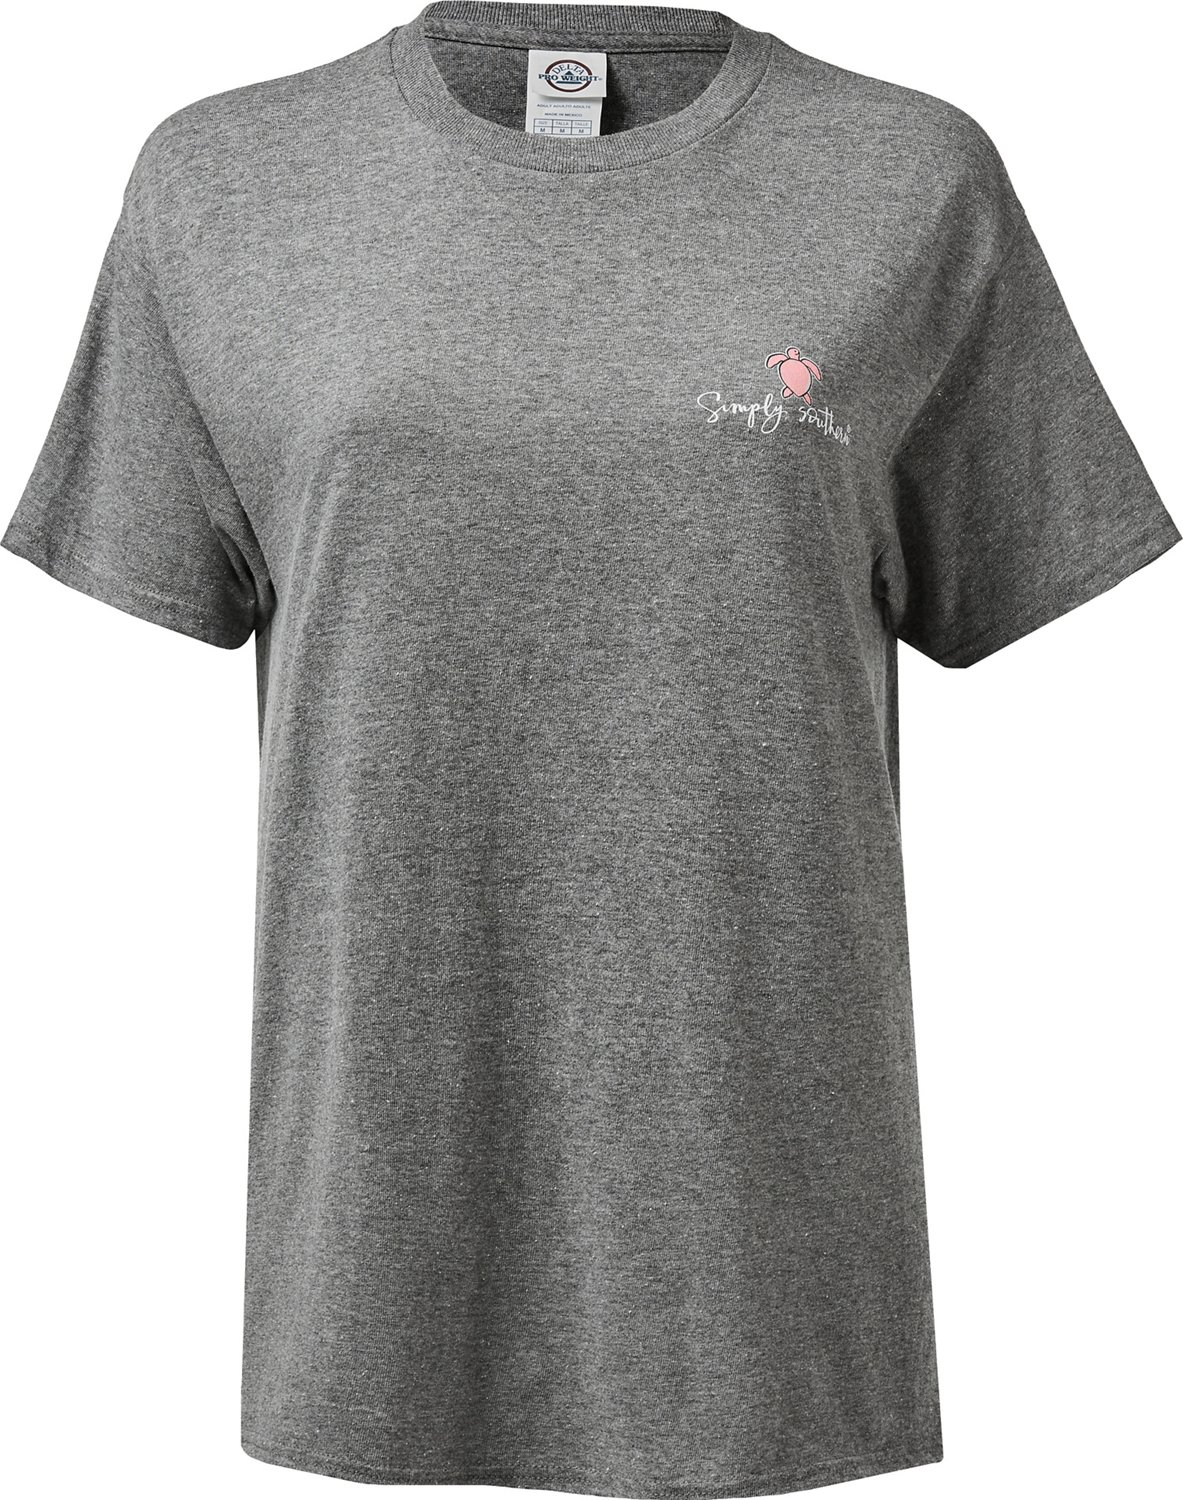 Simply Southern Women's Save the World T-shirt - view number 1